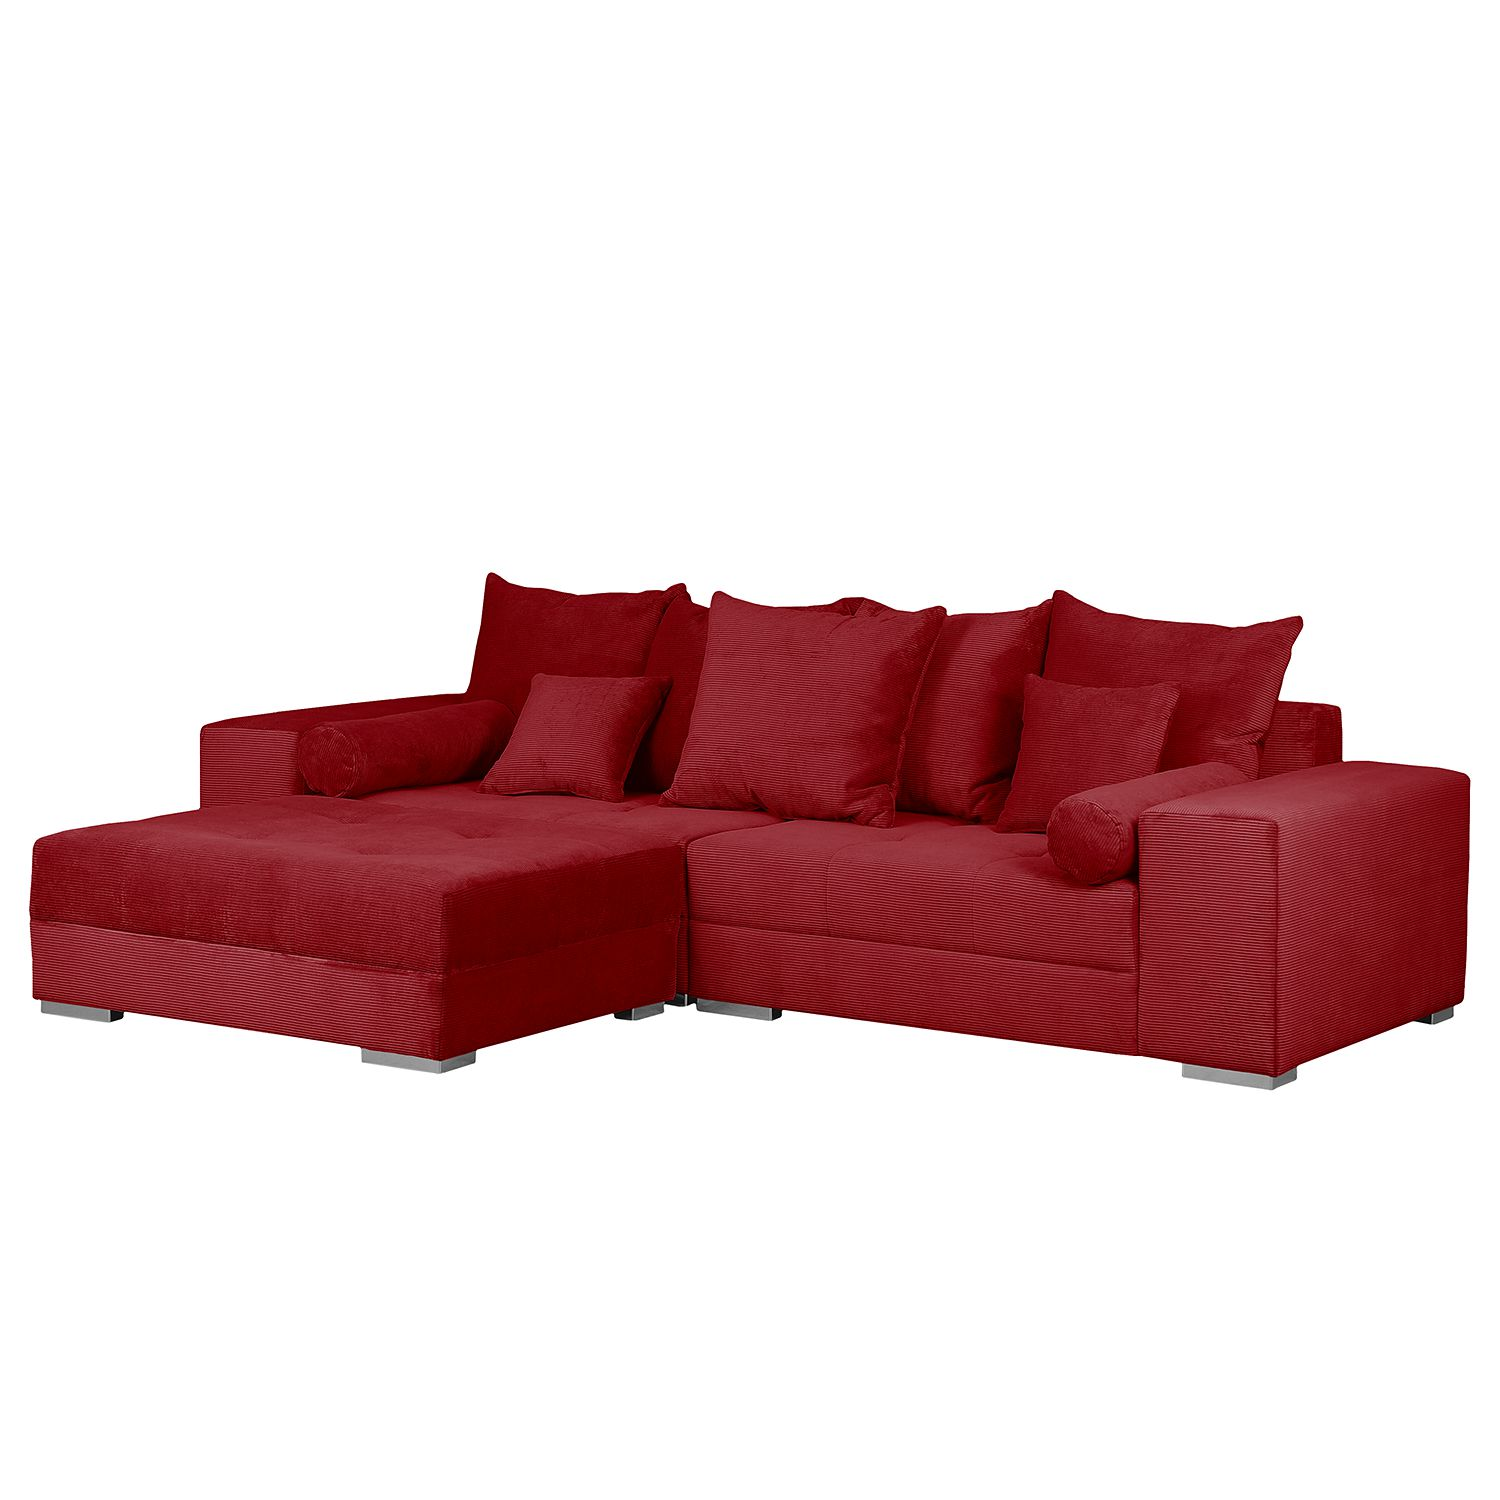 grand canap aaron iii microfibre avec repose pieds rouge. Black Bedroom Furniture Sets. Home Design Ideas